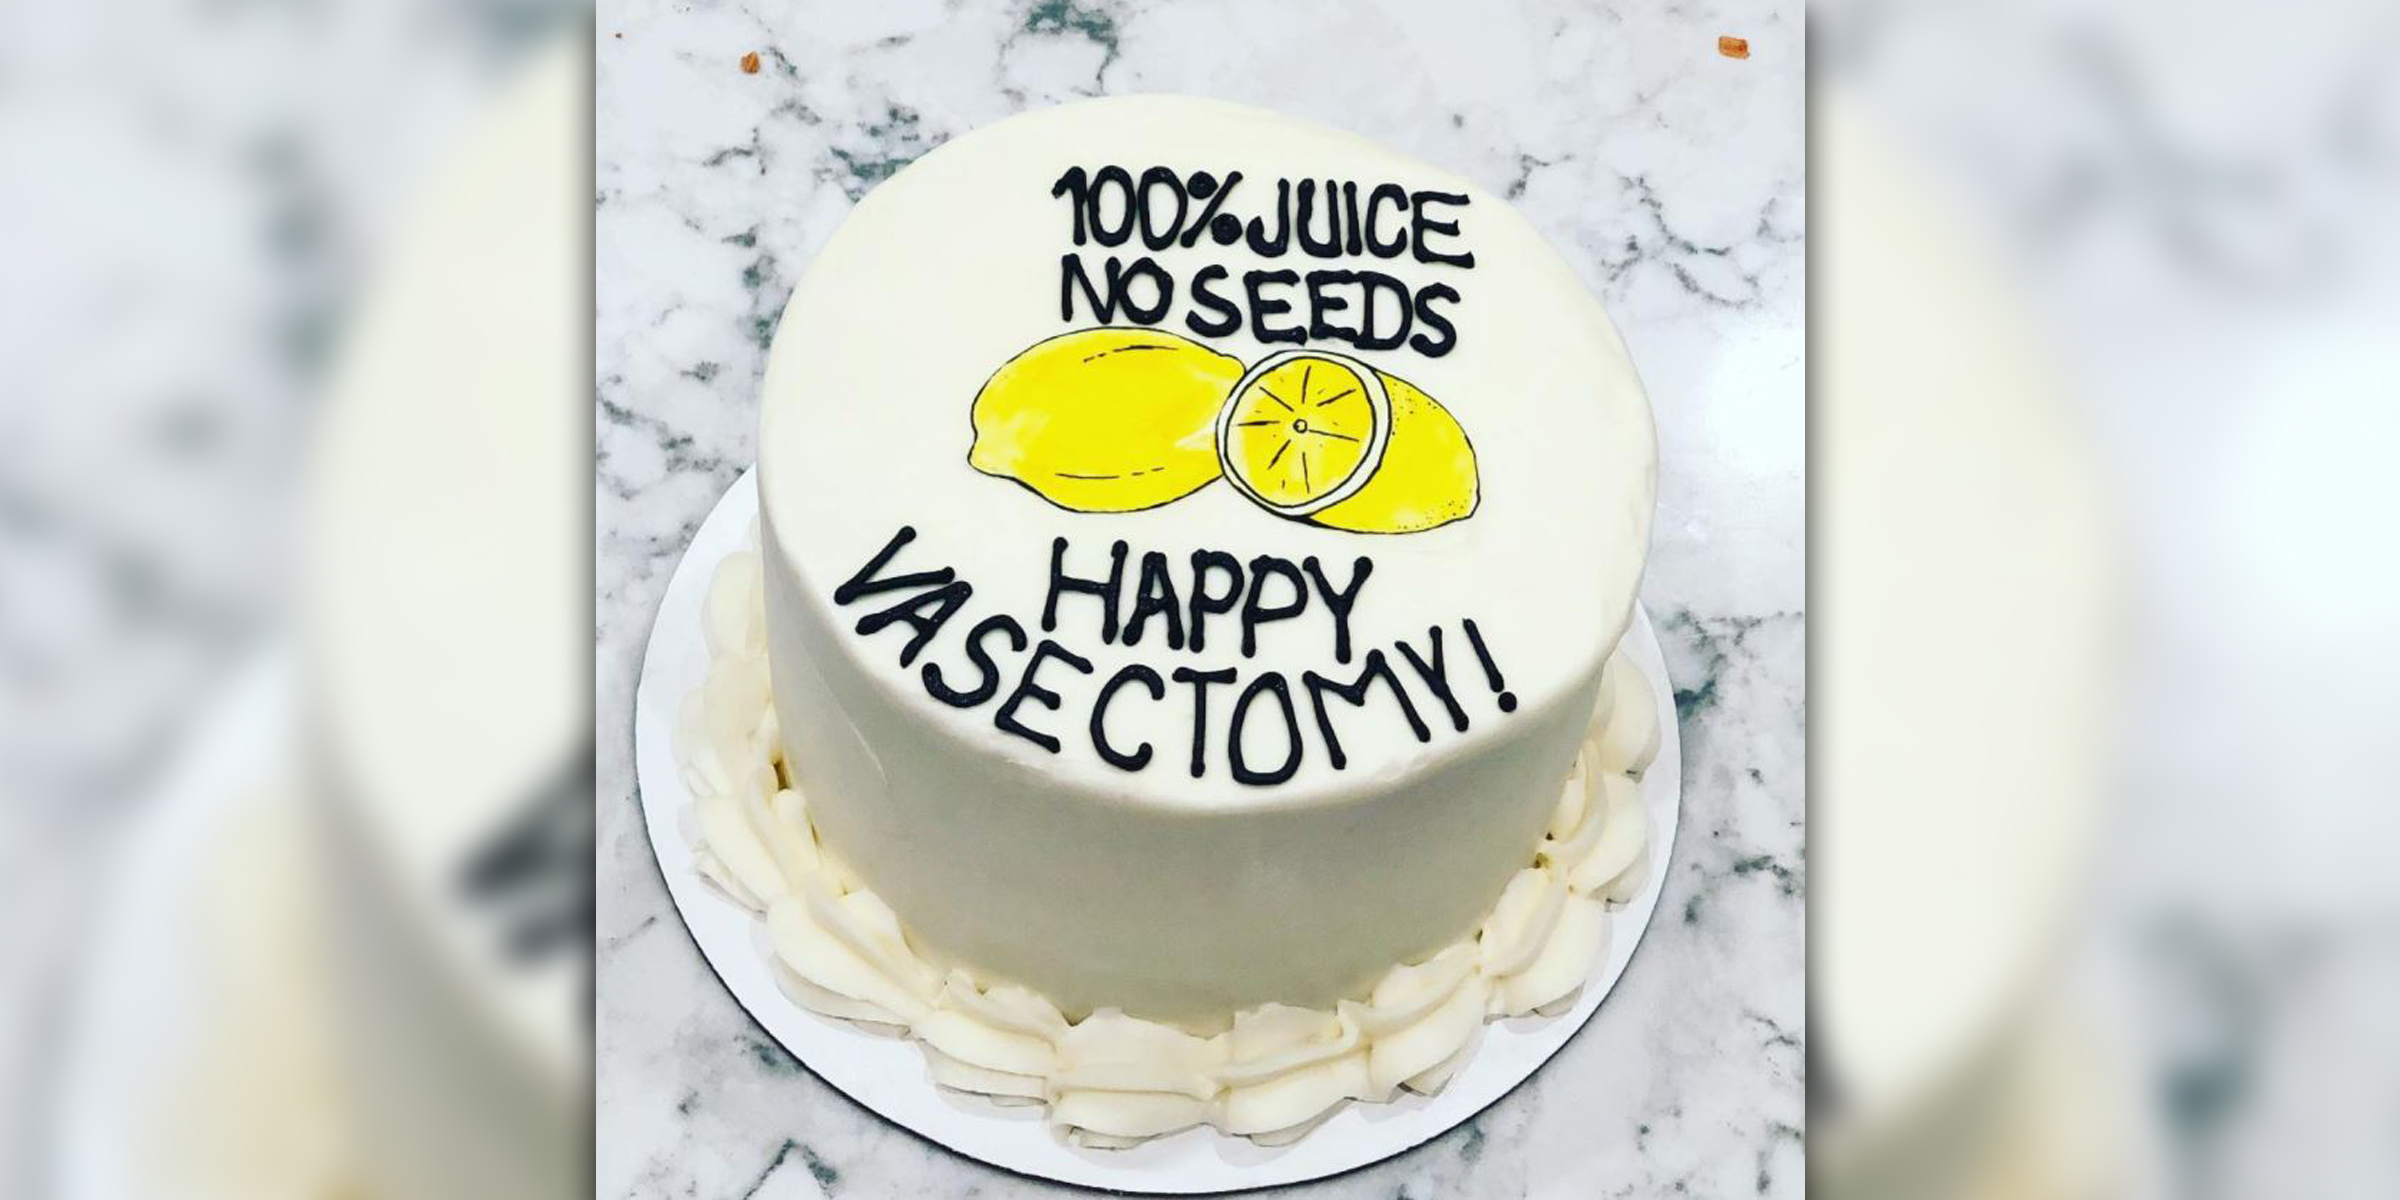 Pleasing Vasectomy Cakes Are A Real Trend And Becoming More Popular Funny Birthday Cards Online Chimdamsfinfo